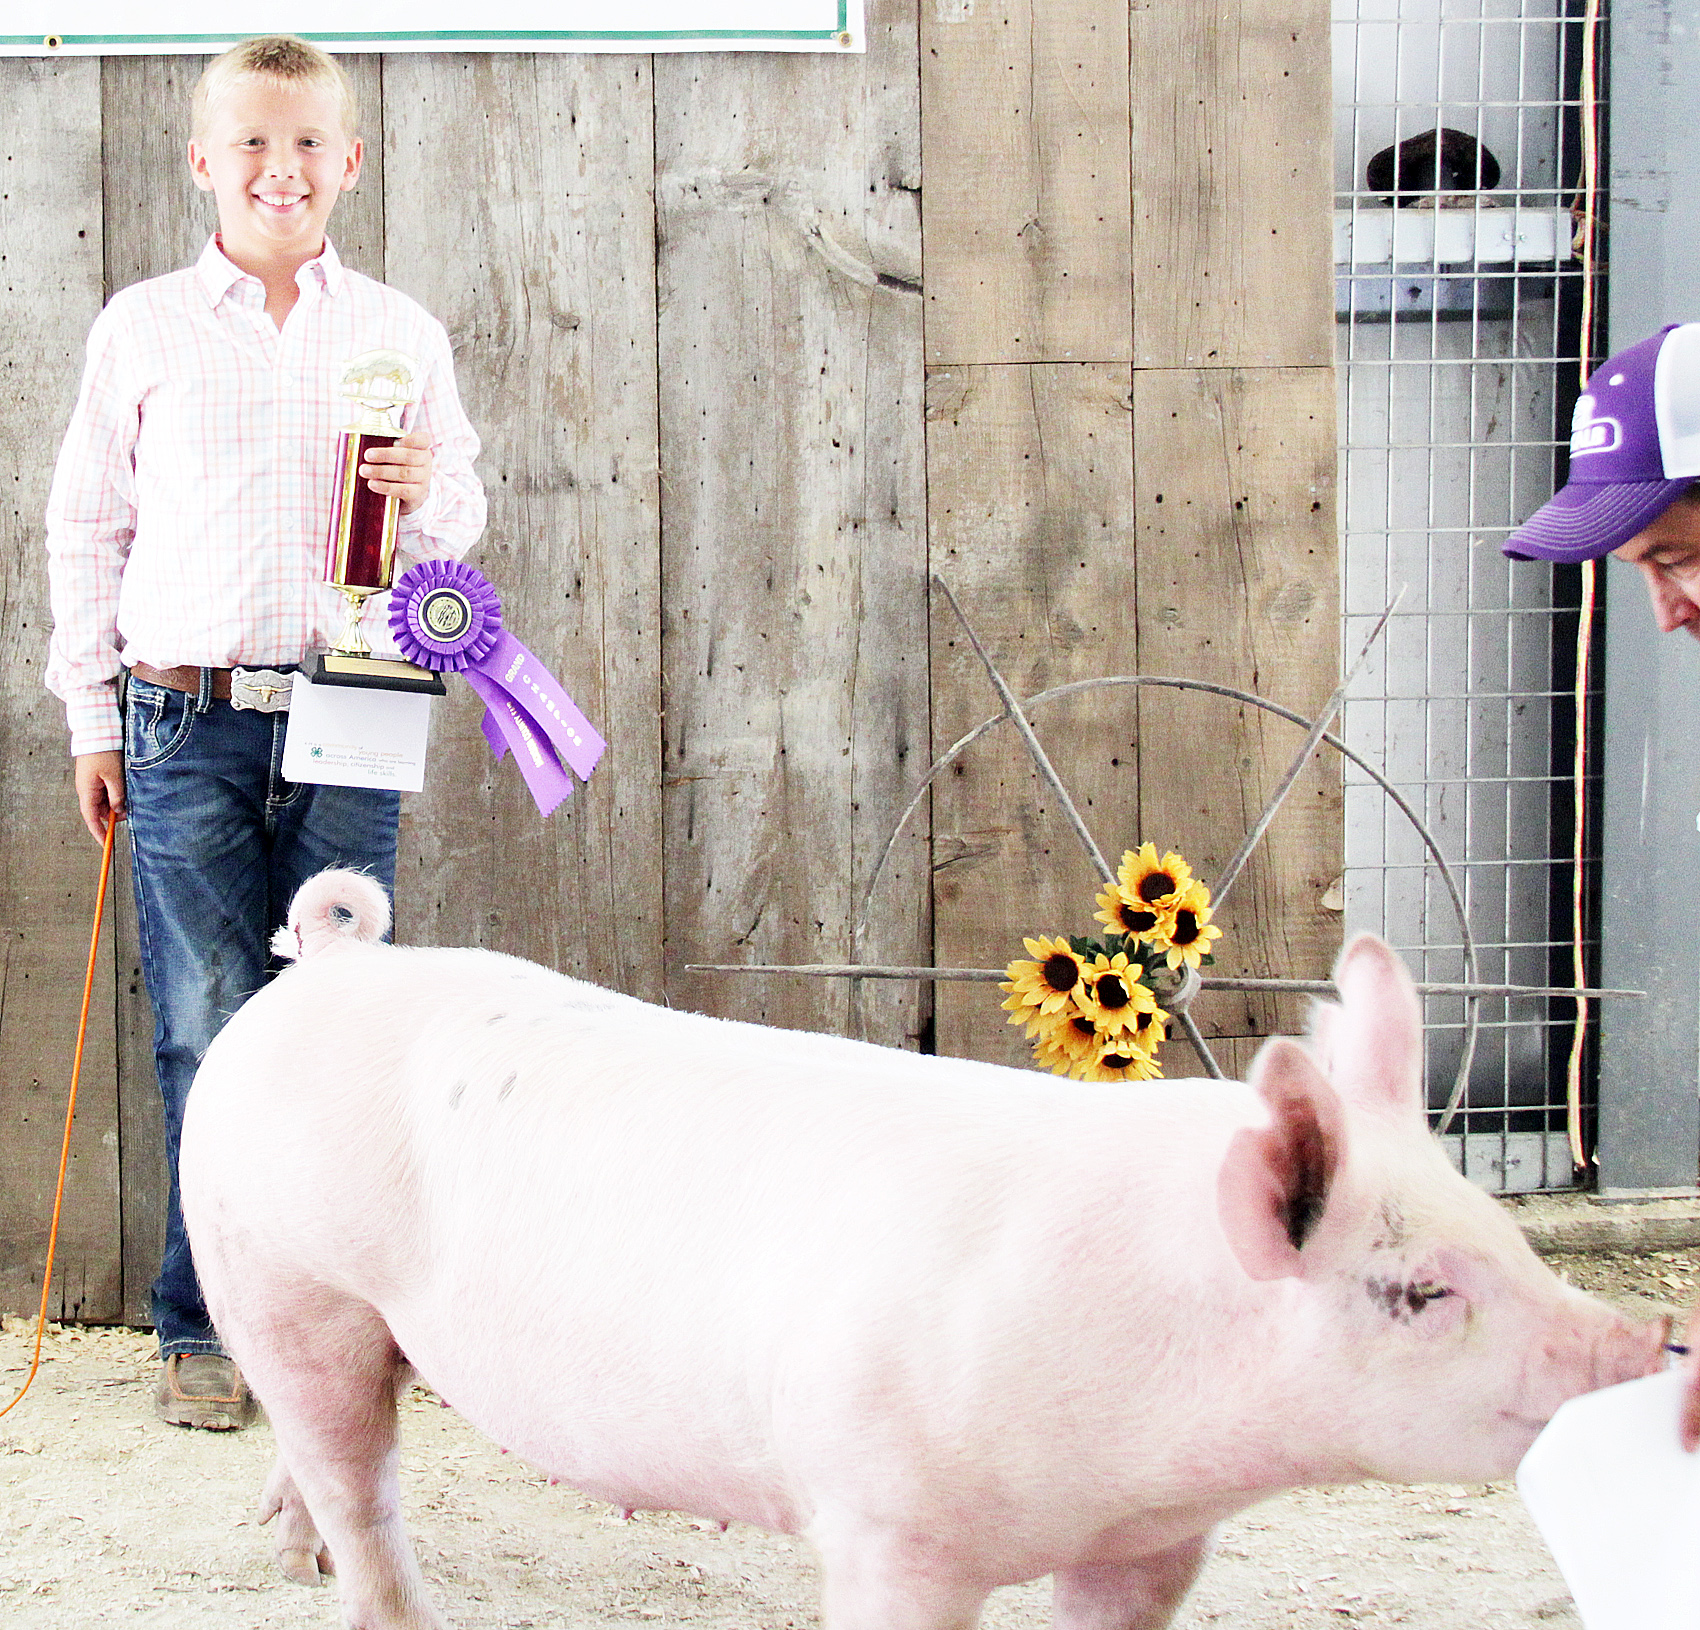 Grady Moss of the Hoyt Livewires 4-H Club was named Champion beginner hog showman at the 2020 Jackson County Fair.